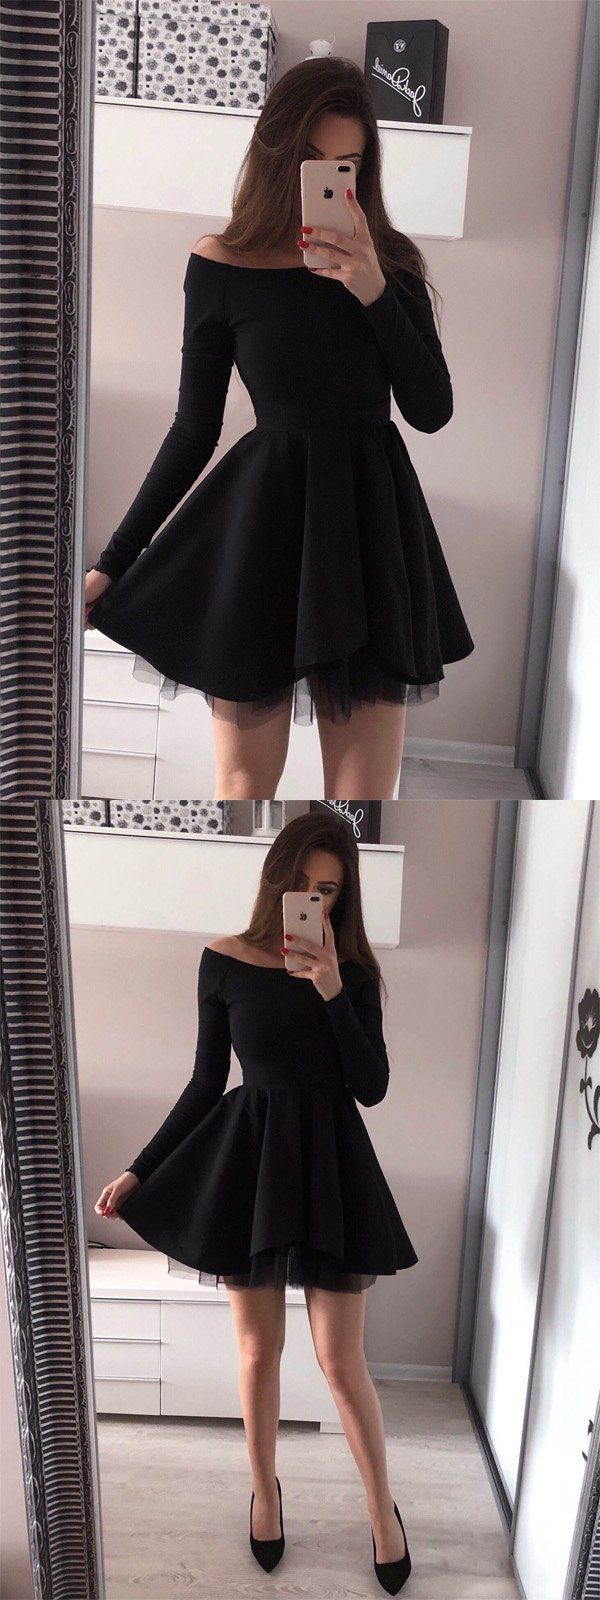 Off-the-Shoulder Long Sleeves Black Tulle Homecoming Dress,Short Prom Dresses,BDY0344 Off-the-Shoulder Long Sleeves Black Tulle Homecoming Dress,Short Prom Dresses,BDY0344 3